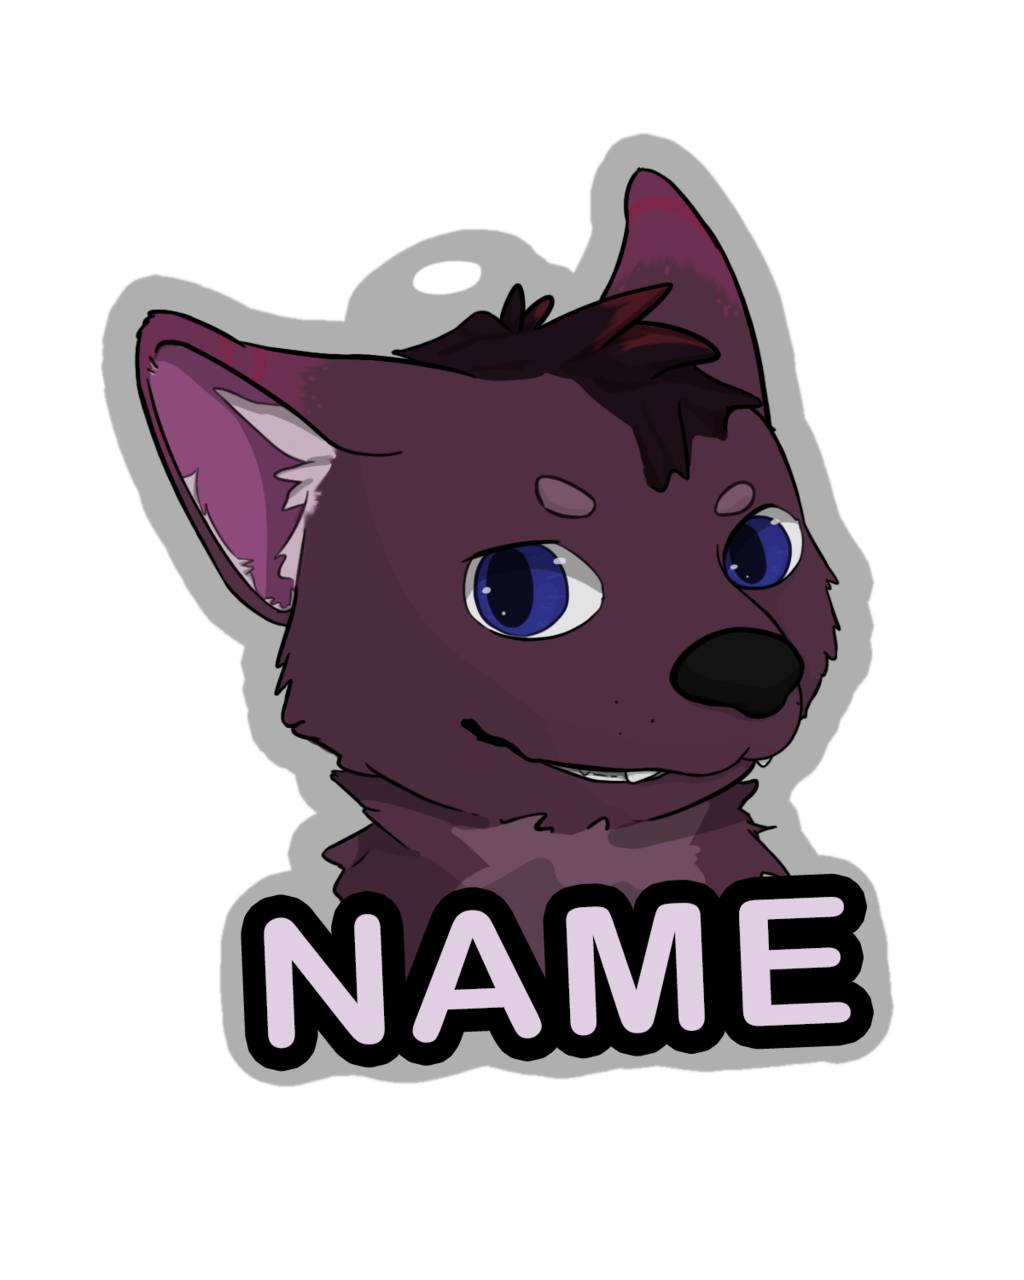 Most recent image: Badge Example